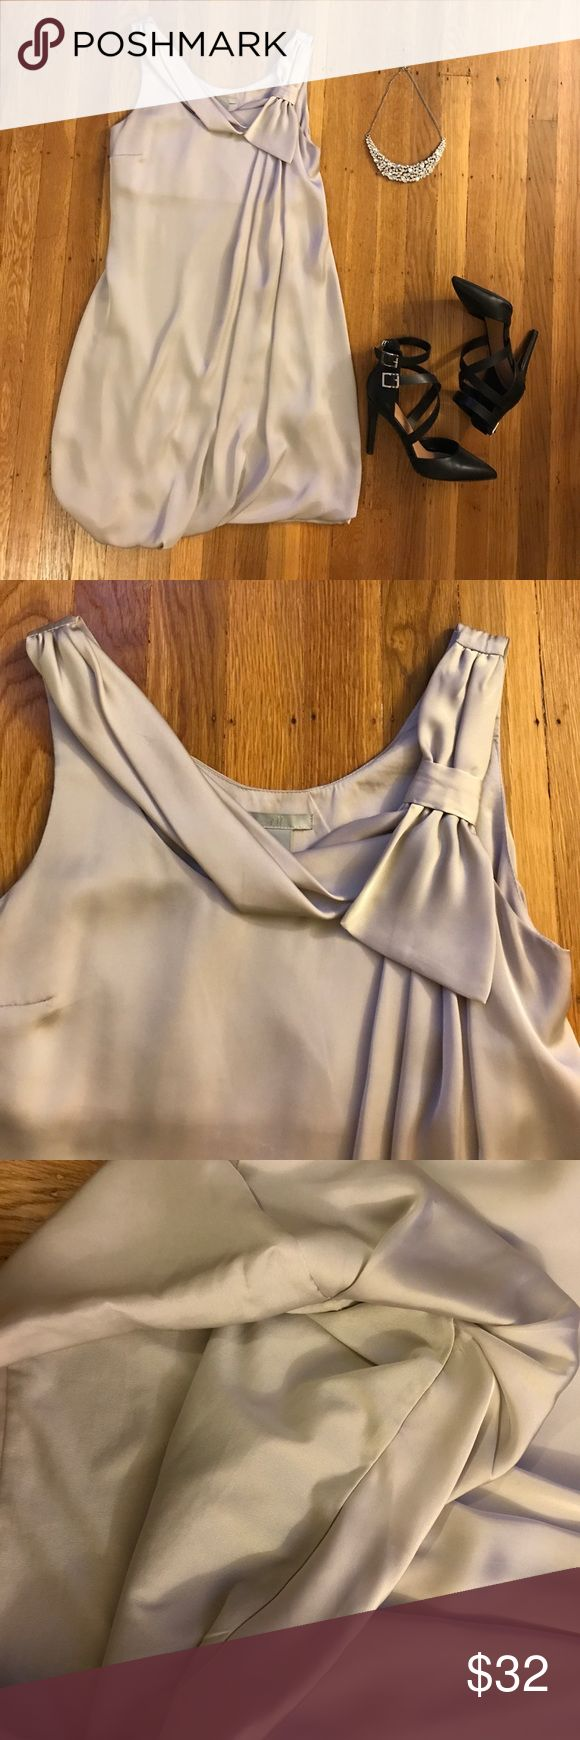 "Elegant Silver Mini Poly Dress This mini dress is super elegant. Features a ribbon-like drape design by the neckline. Waist not fitted. Material is 100% polyester. The lining is 100% polyester too. Measures approximately 31.5"" from shoulder to bottom. Worn only once! Price firm. H&M Dresses Mini"